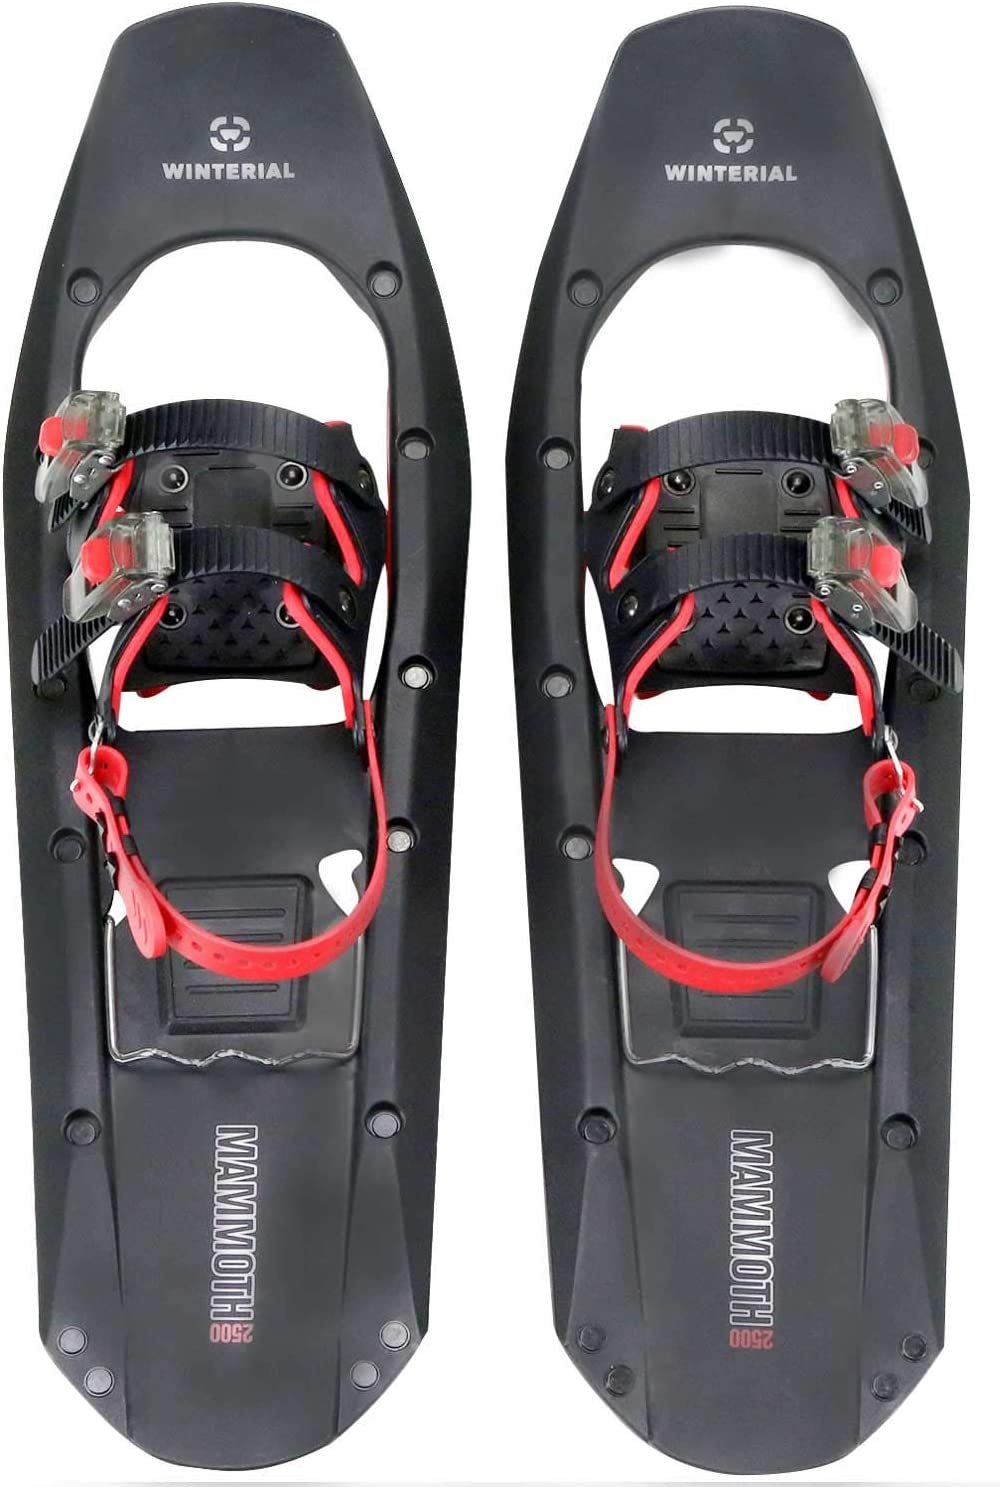 Winterial Mammoth Snowshoes 25 Inch Lightweight Polymer Square Toed Mountain Terrain Snow Shoes for Advanced Users